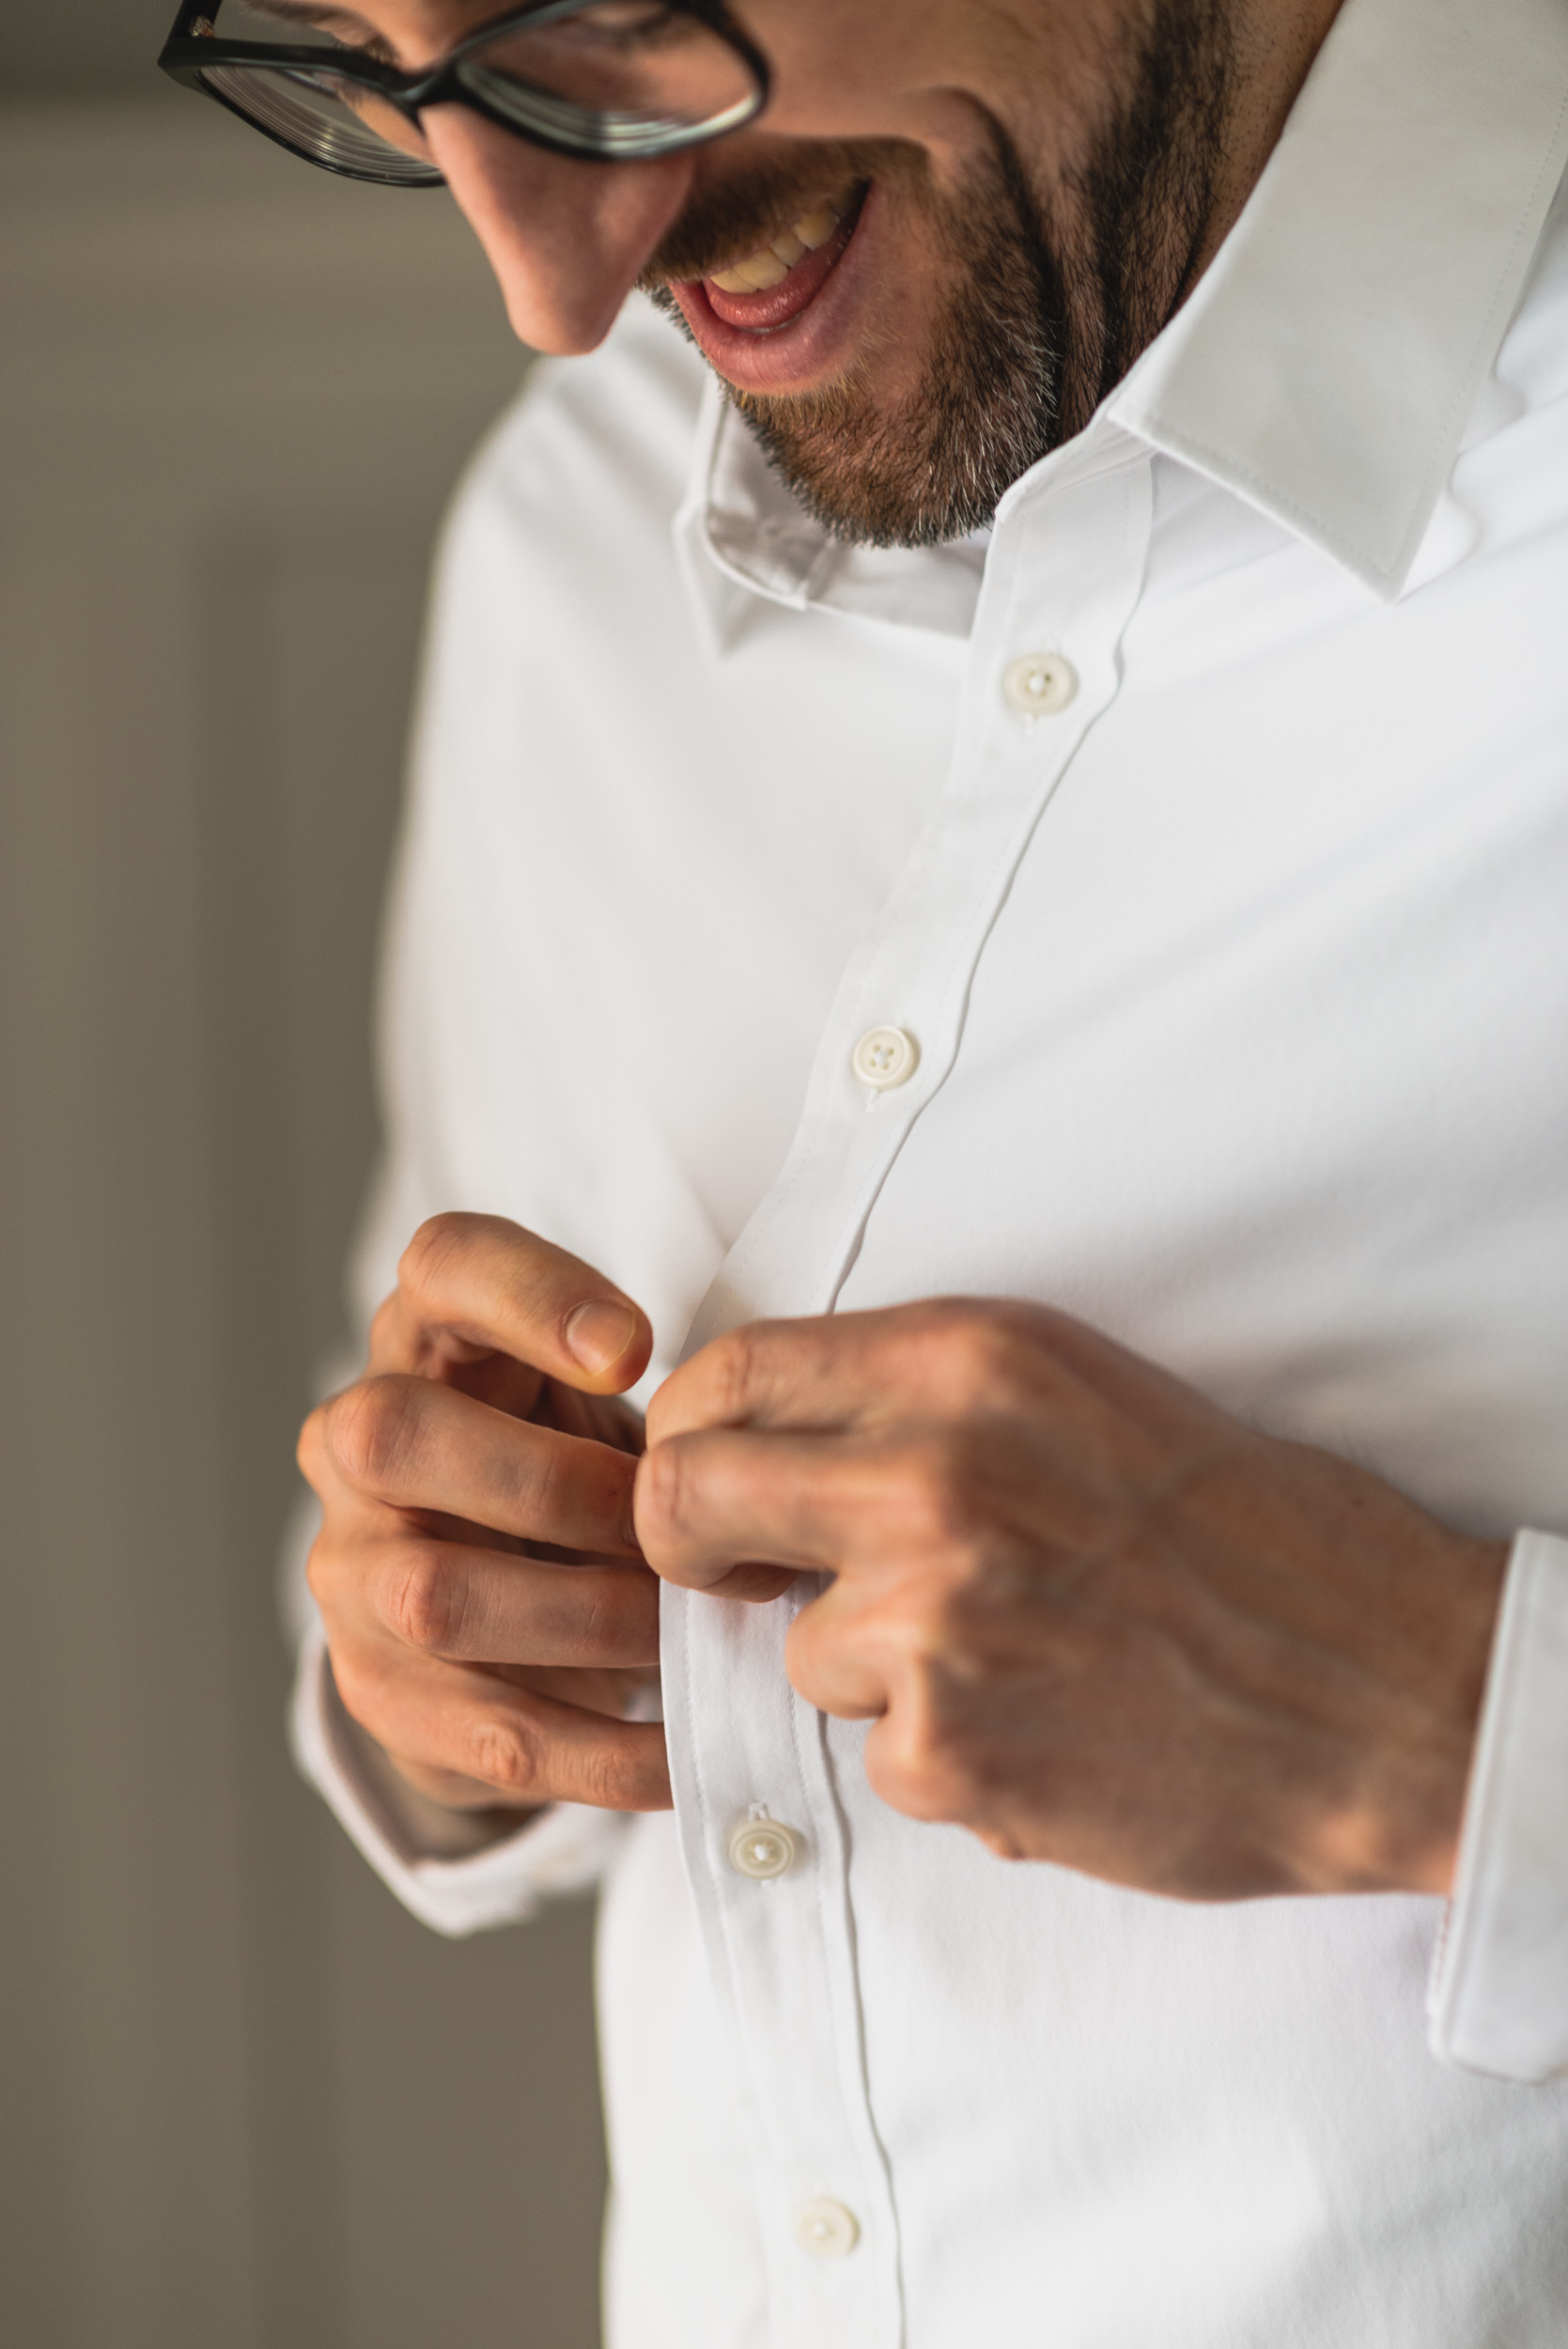 Groom buttoning shirt